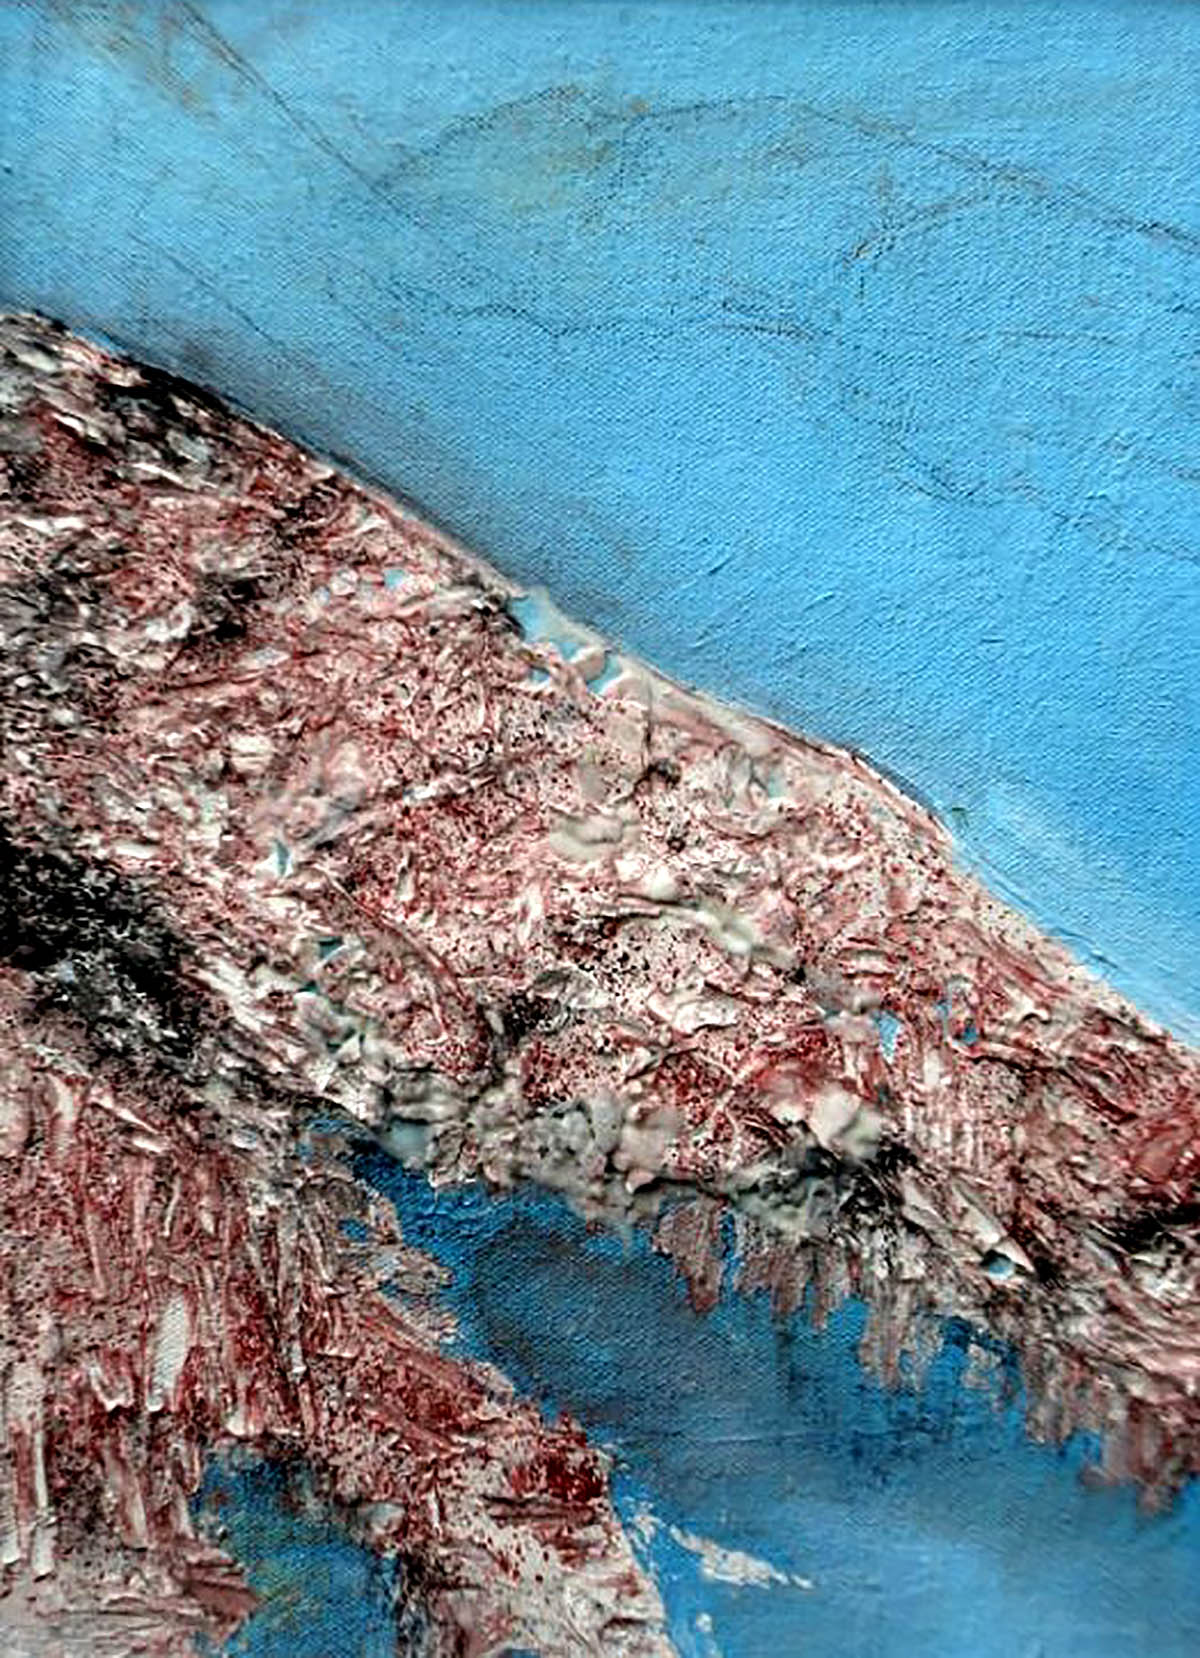 Vibha Pankaj, 'Shoreline, Land and Shifting Time', acrylic and plaster of Paris on canvas board